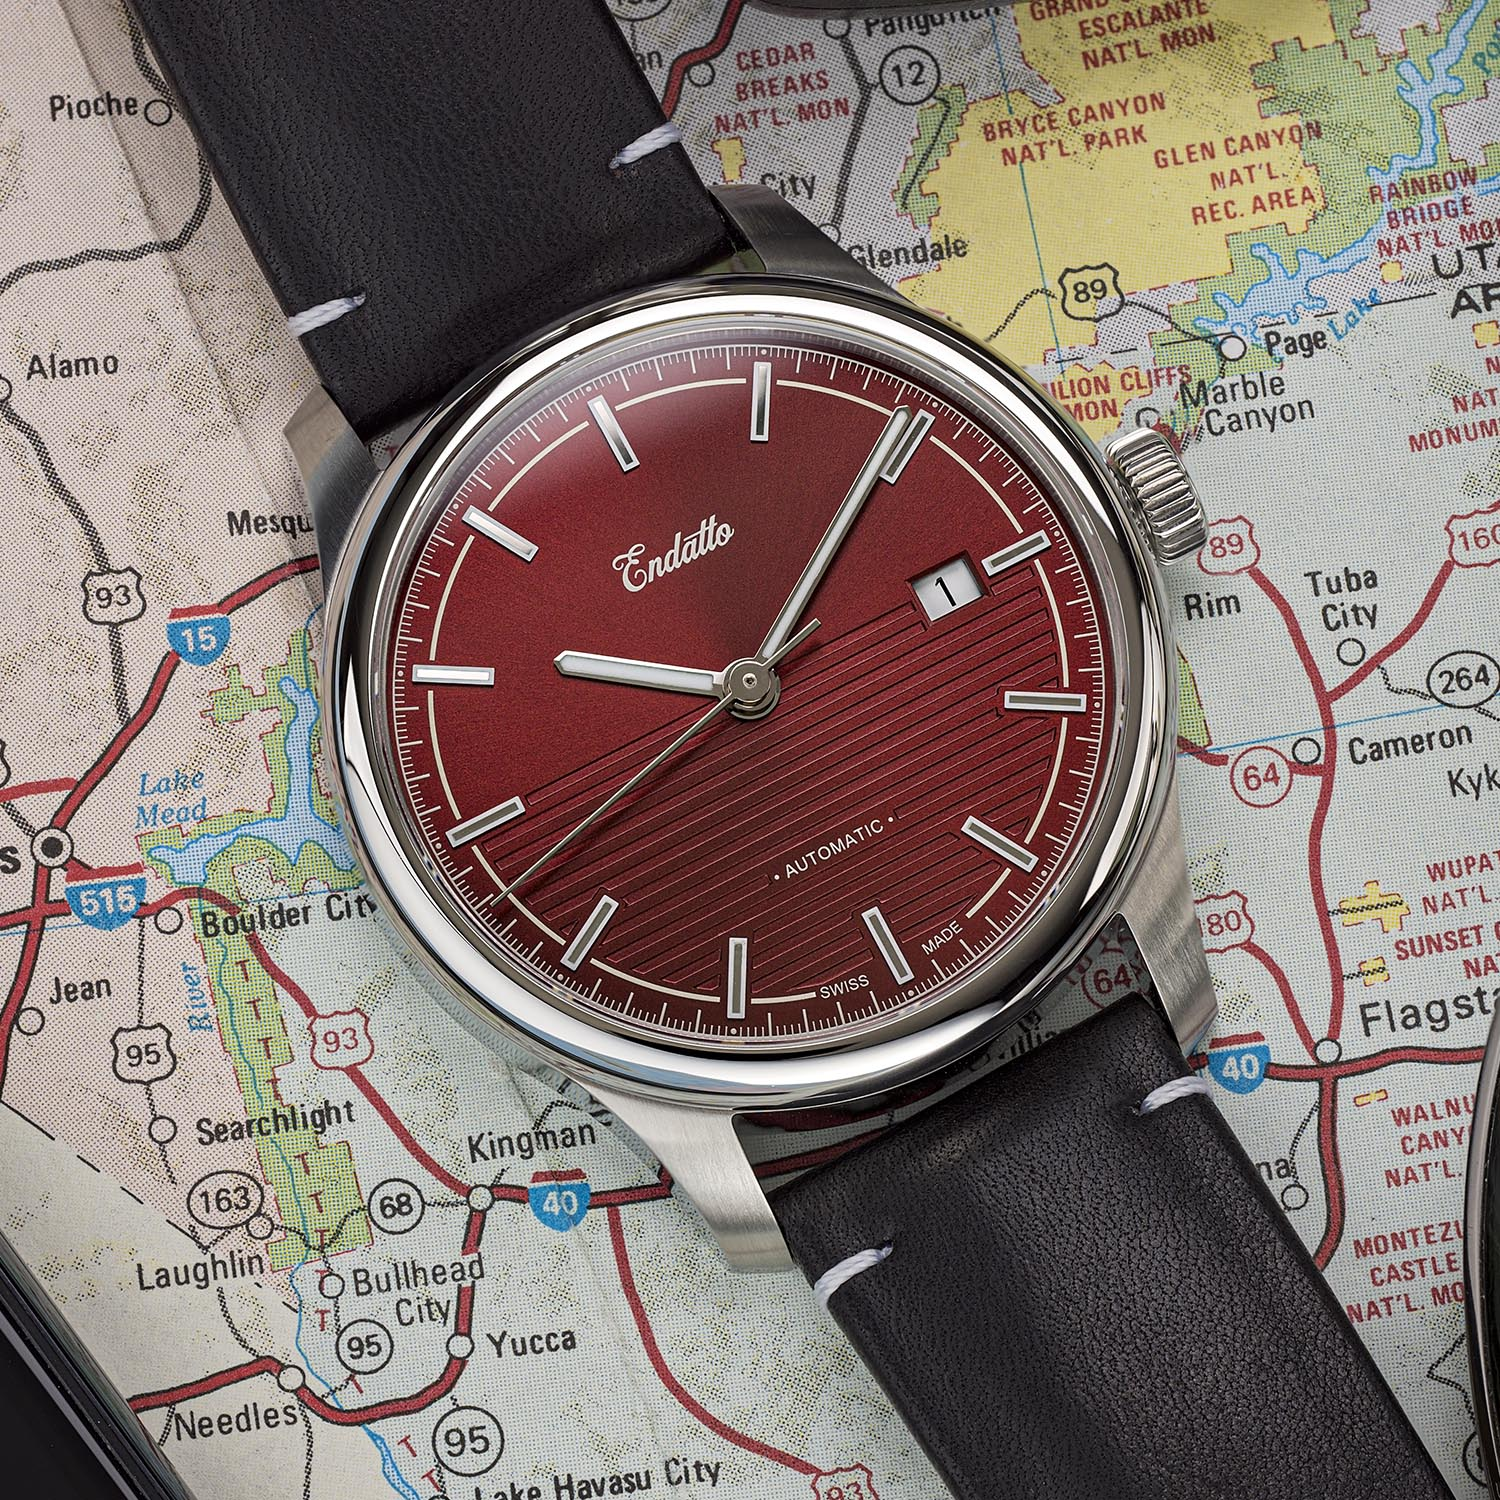 Endatto Watches Endatto-C1V1-and-C1V2-New-American-Watch-Brand-5